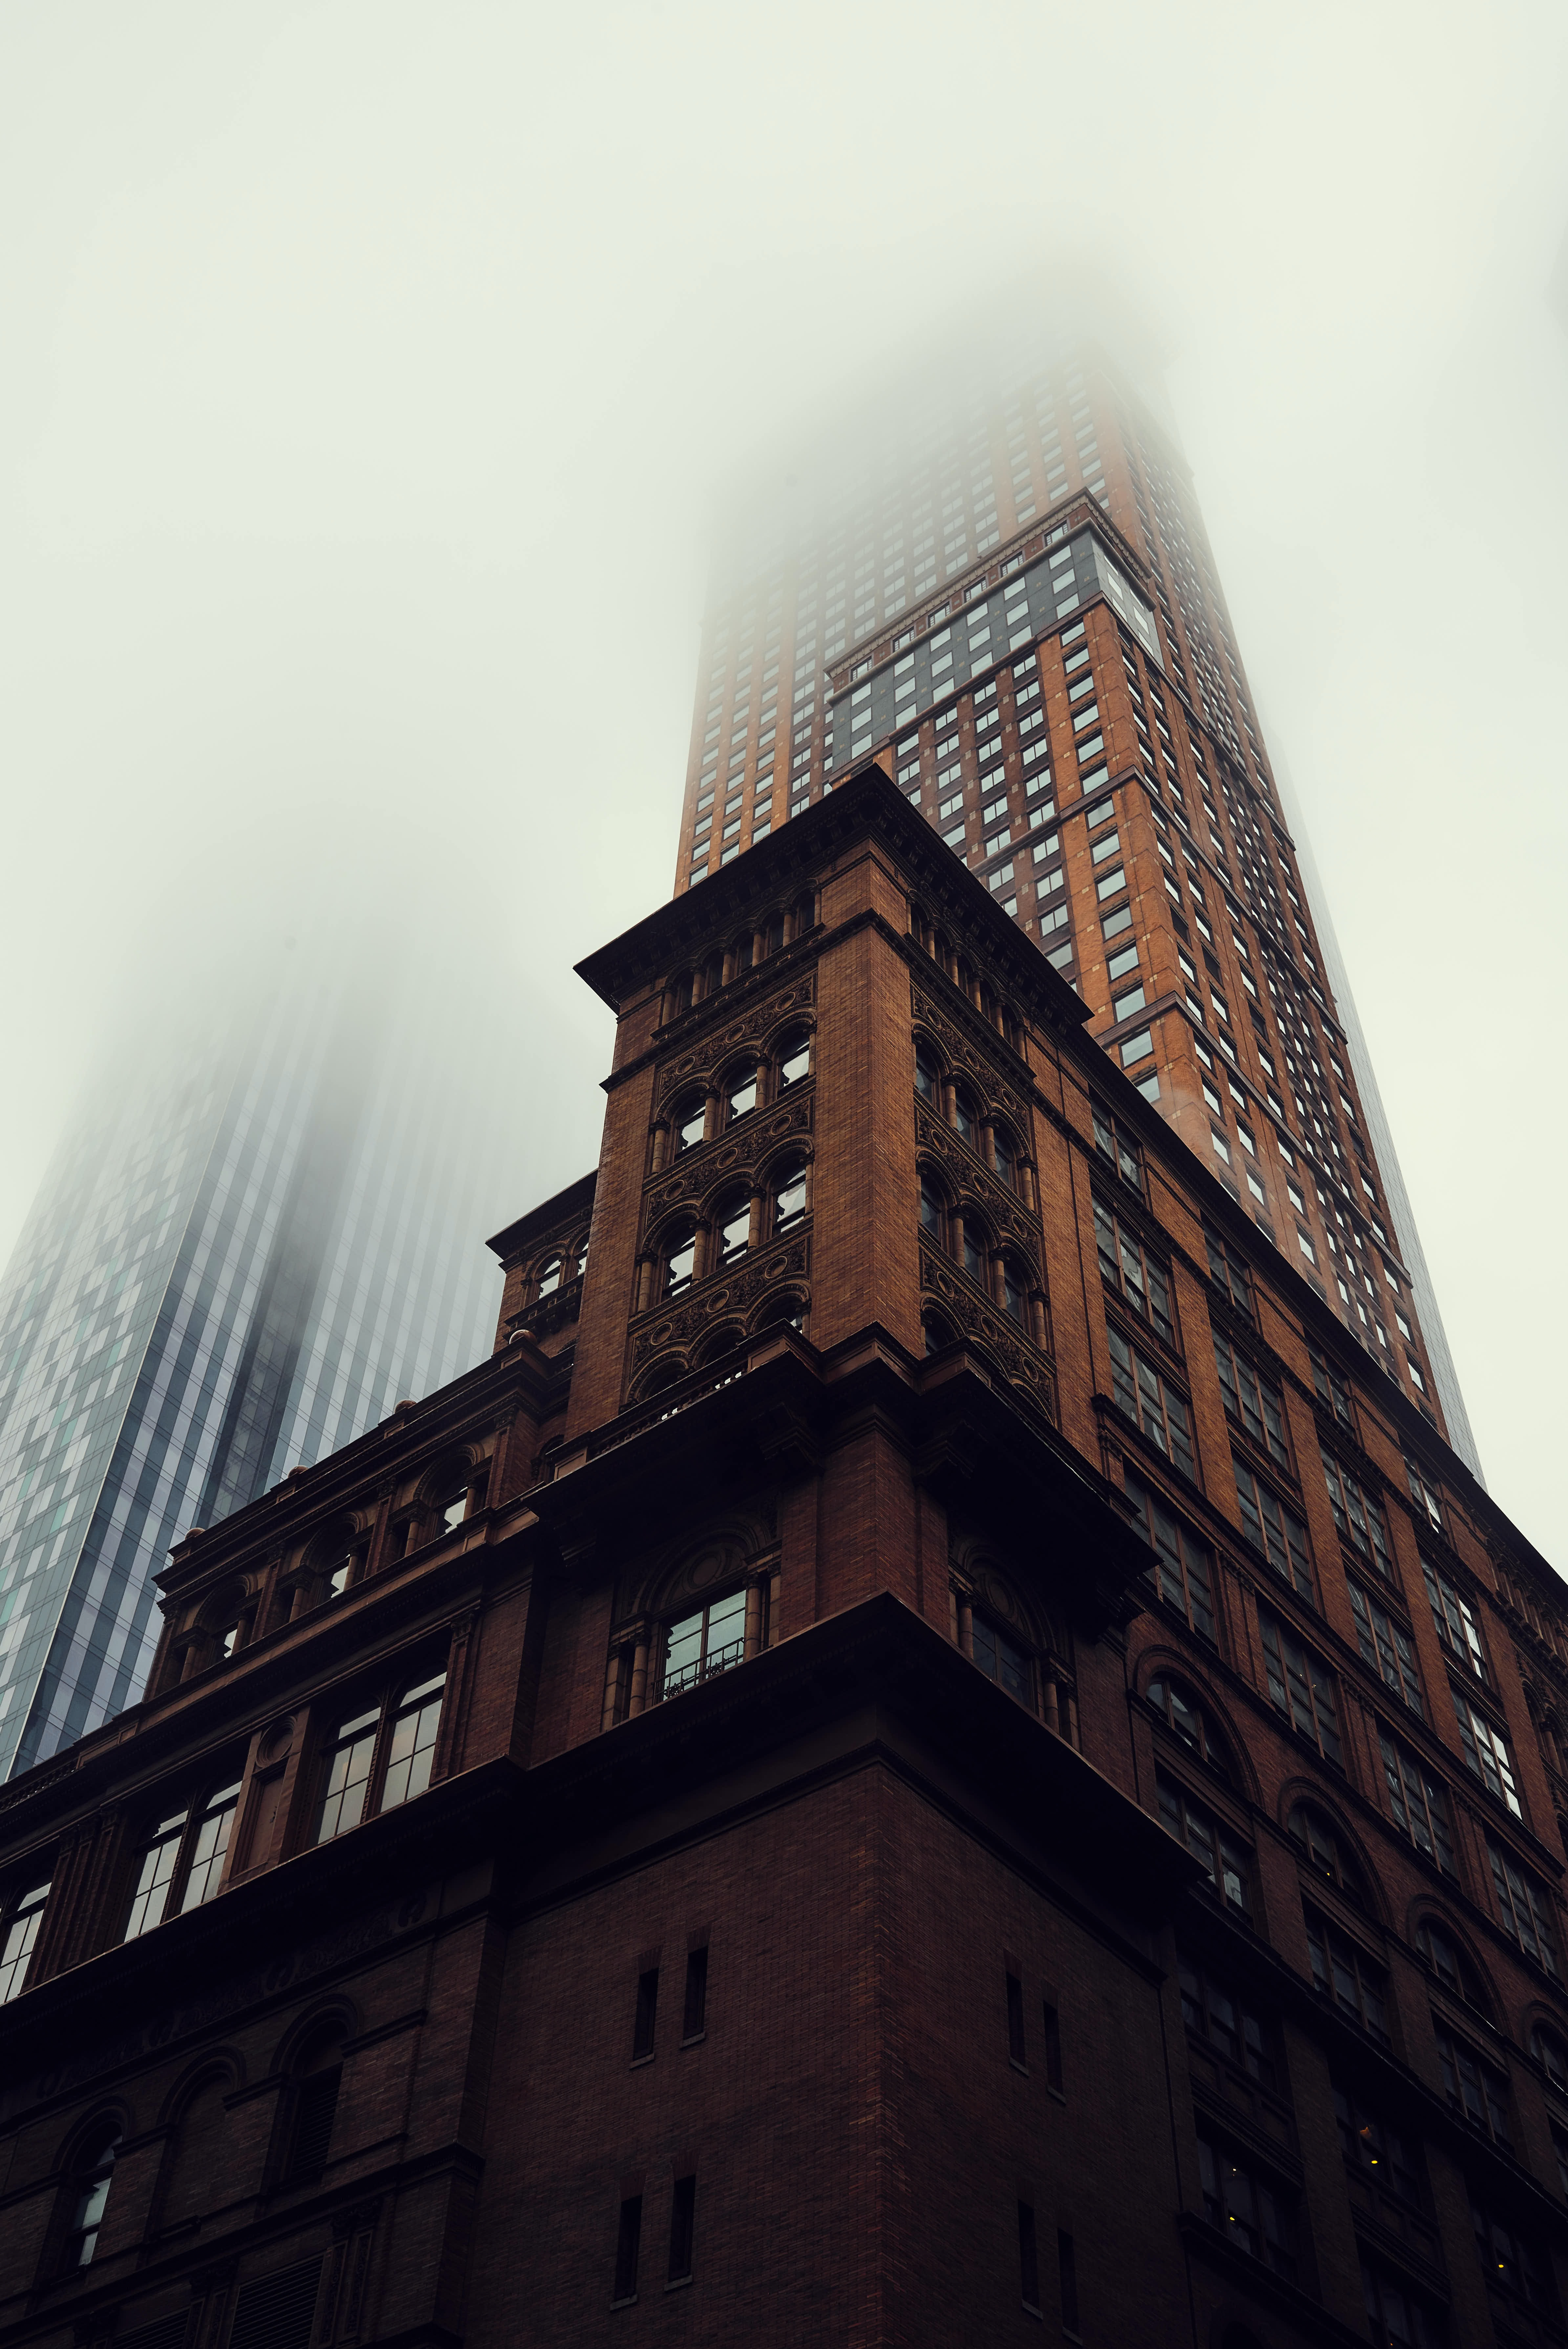 A ground view of a dark brick skyscraper disappearing into fog in New York City